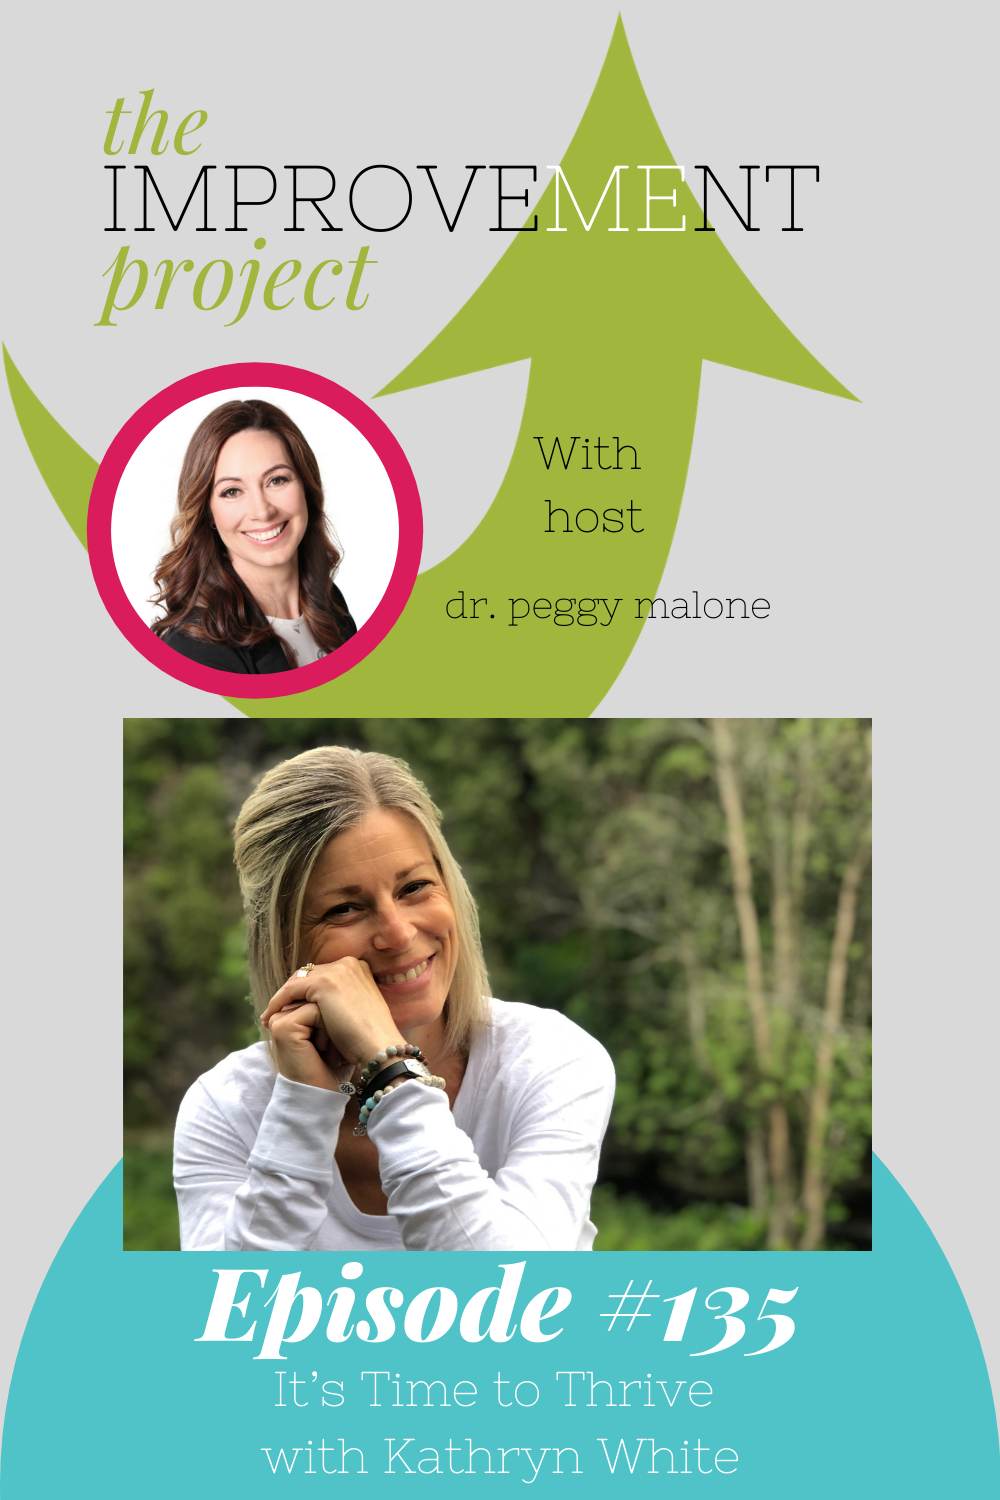 It's Time to Thrive With Kathryn White